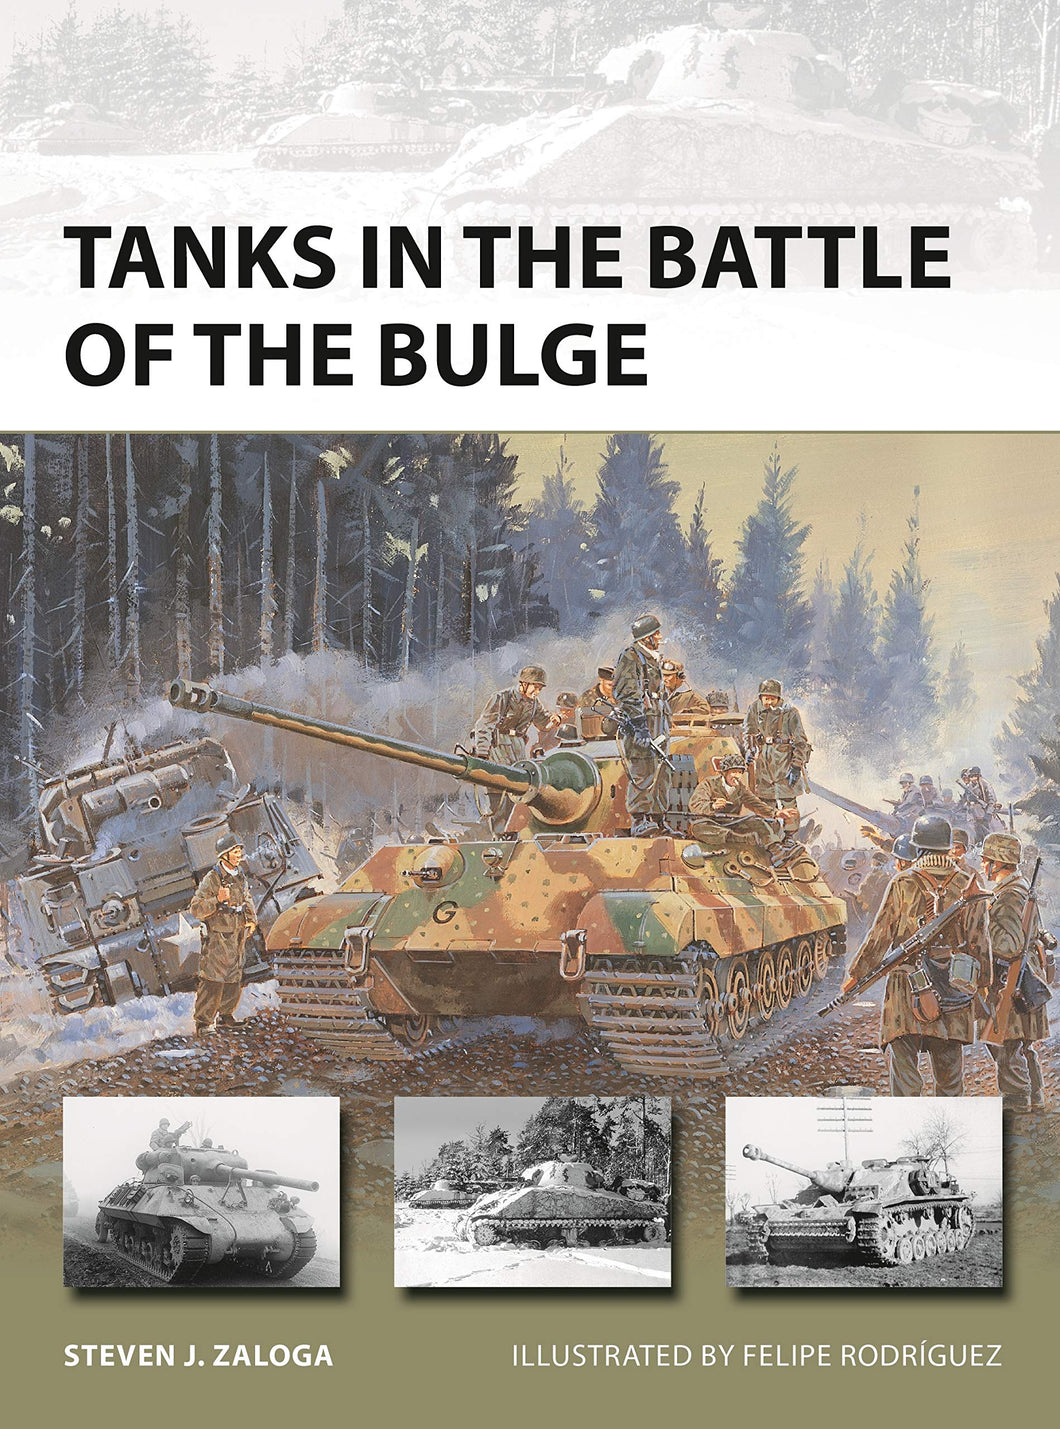 Tanks in the Battle of the Bulge - The Tank Museum